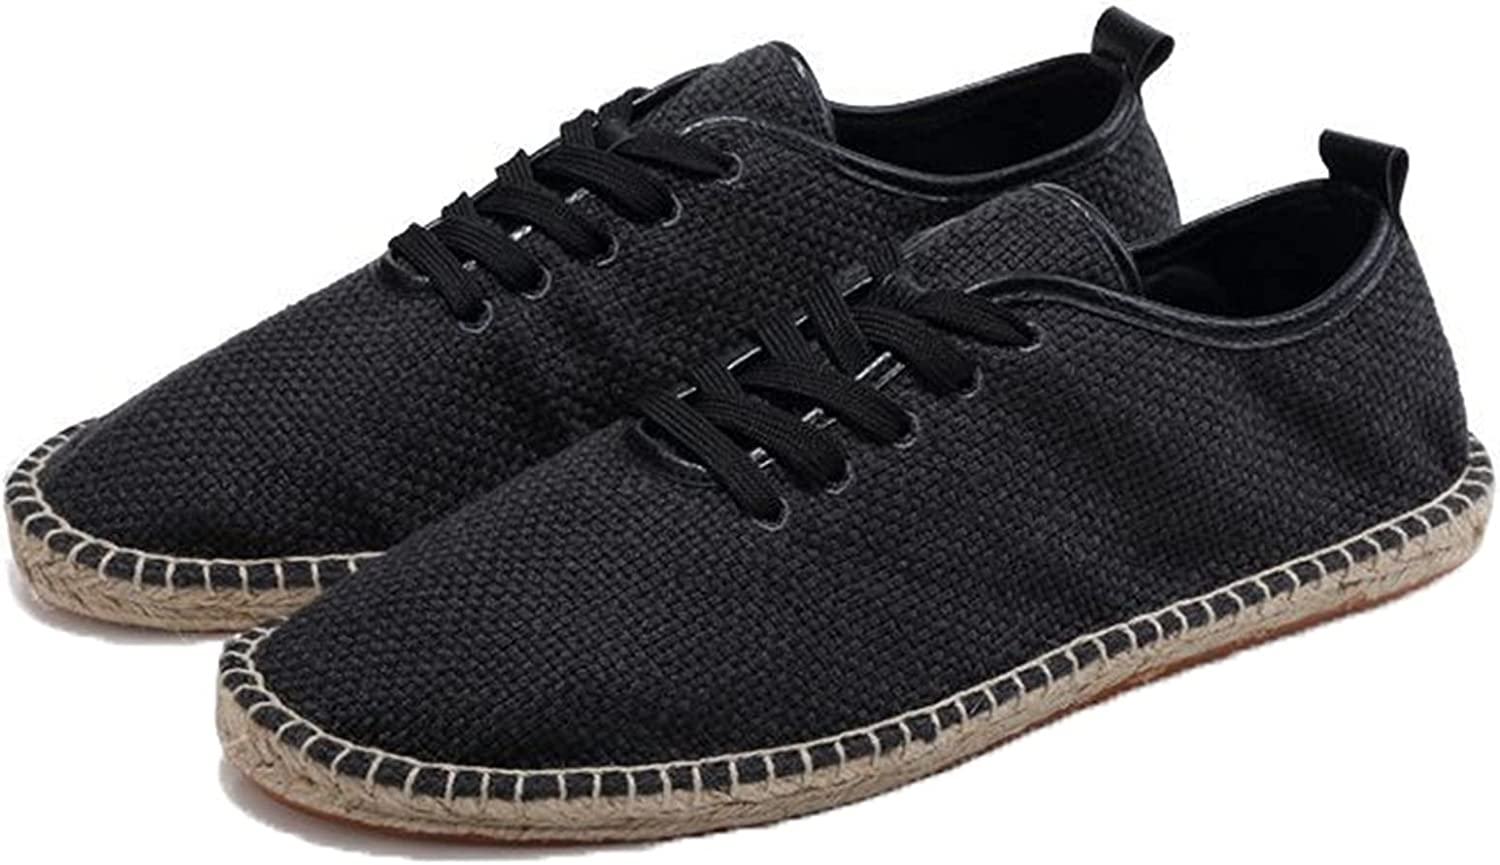 Espadrilles for MenClassic Max 85% OFF Casual Footwear Finally popular brand Canvas Summer Anti-S